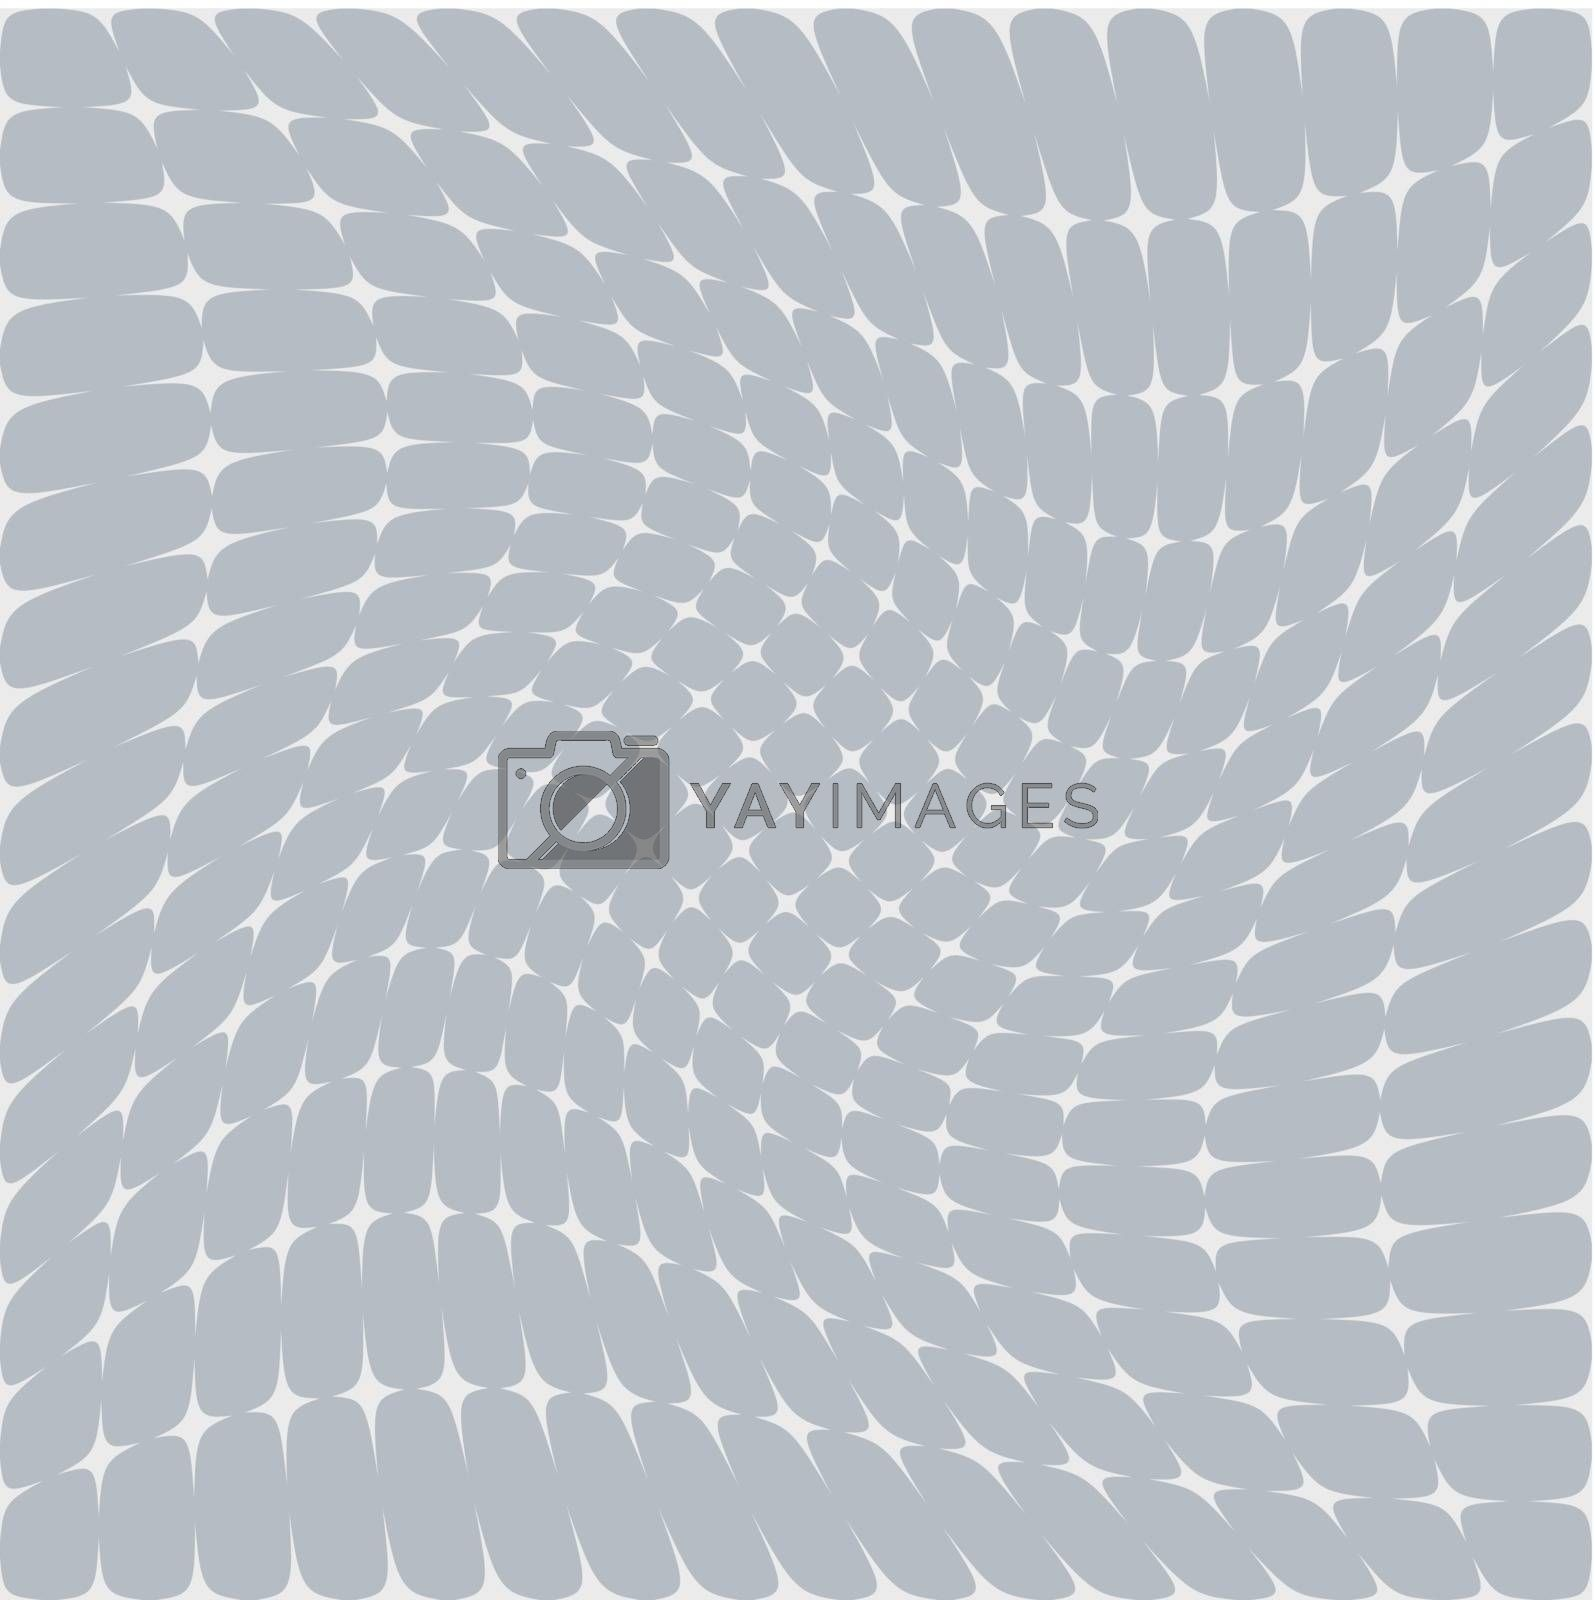 Royalty free image of Abstract star background by dvarg